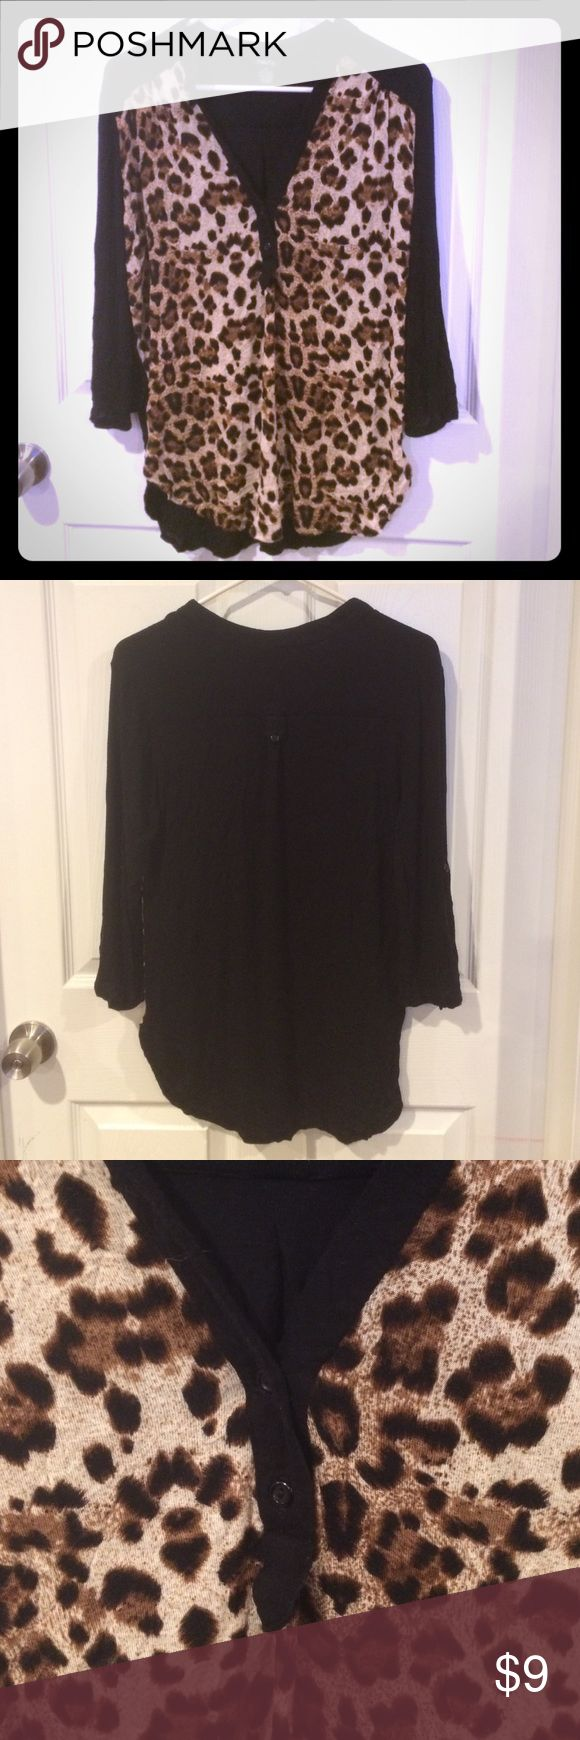 Leopard shirt Leopard shirt. 3/4 length sleeves. Can also be rolled up. Comfortable Rue 21 Tops Blouses